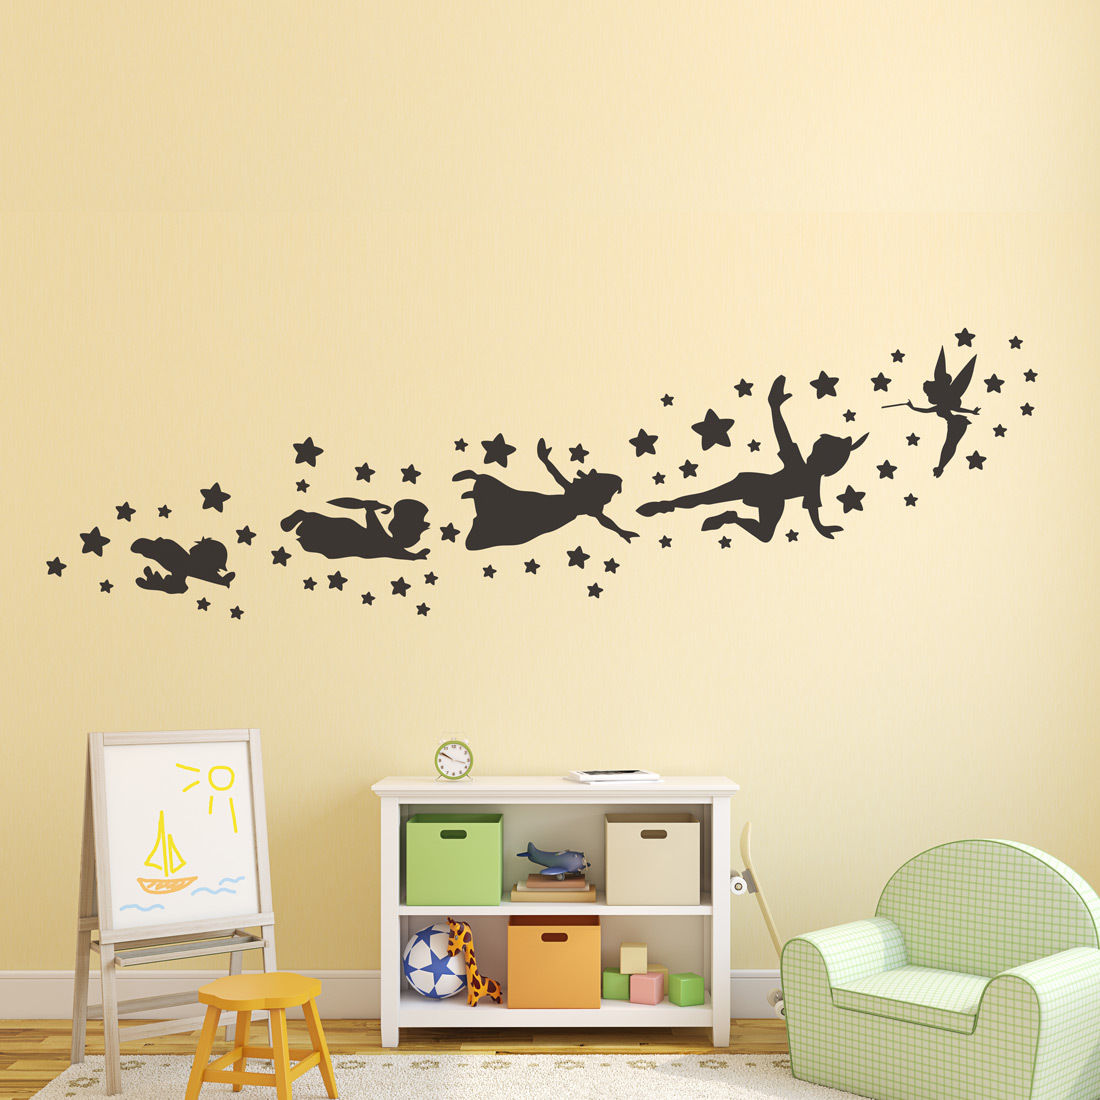 Vinyl Wall Decal Peter Pan Wall Decal Talentneeds